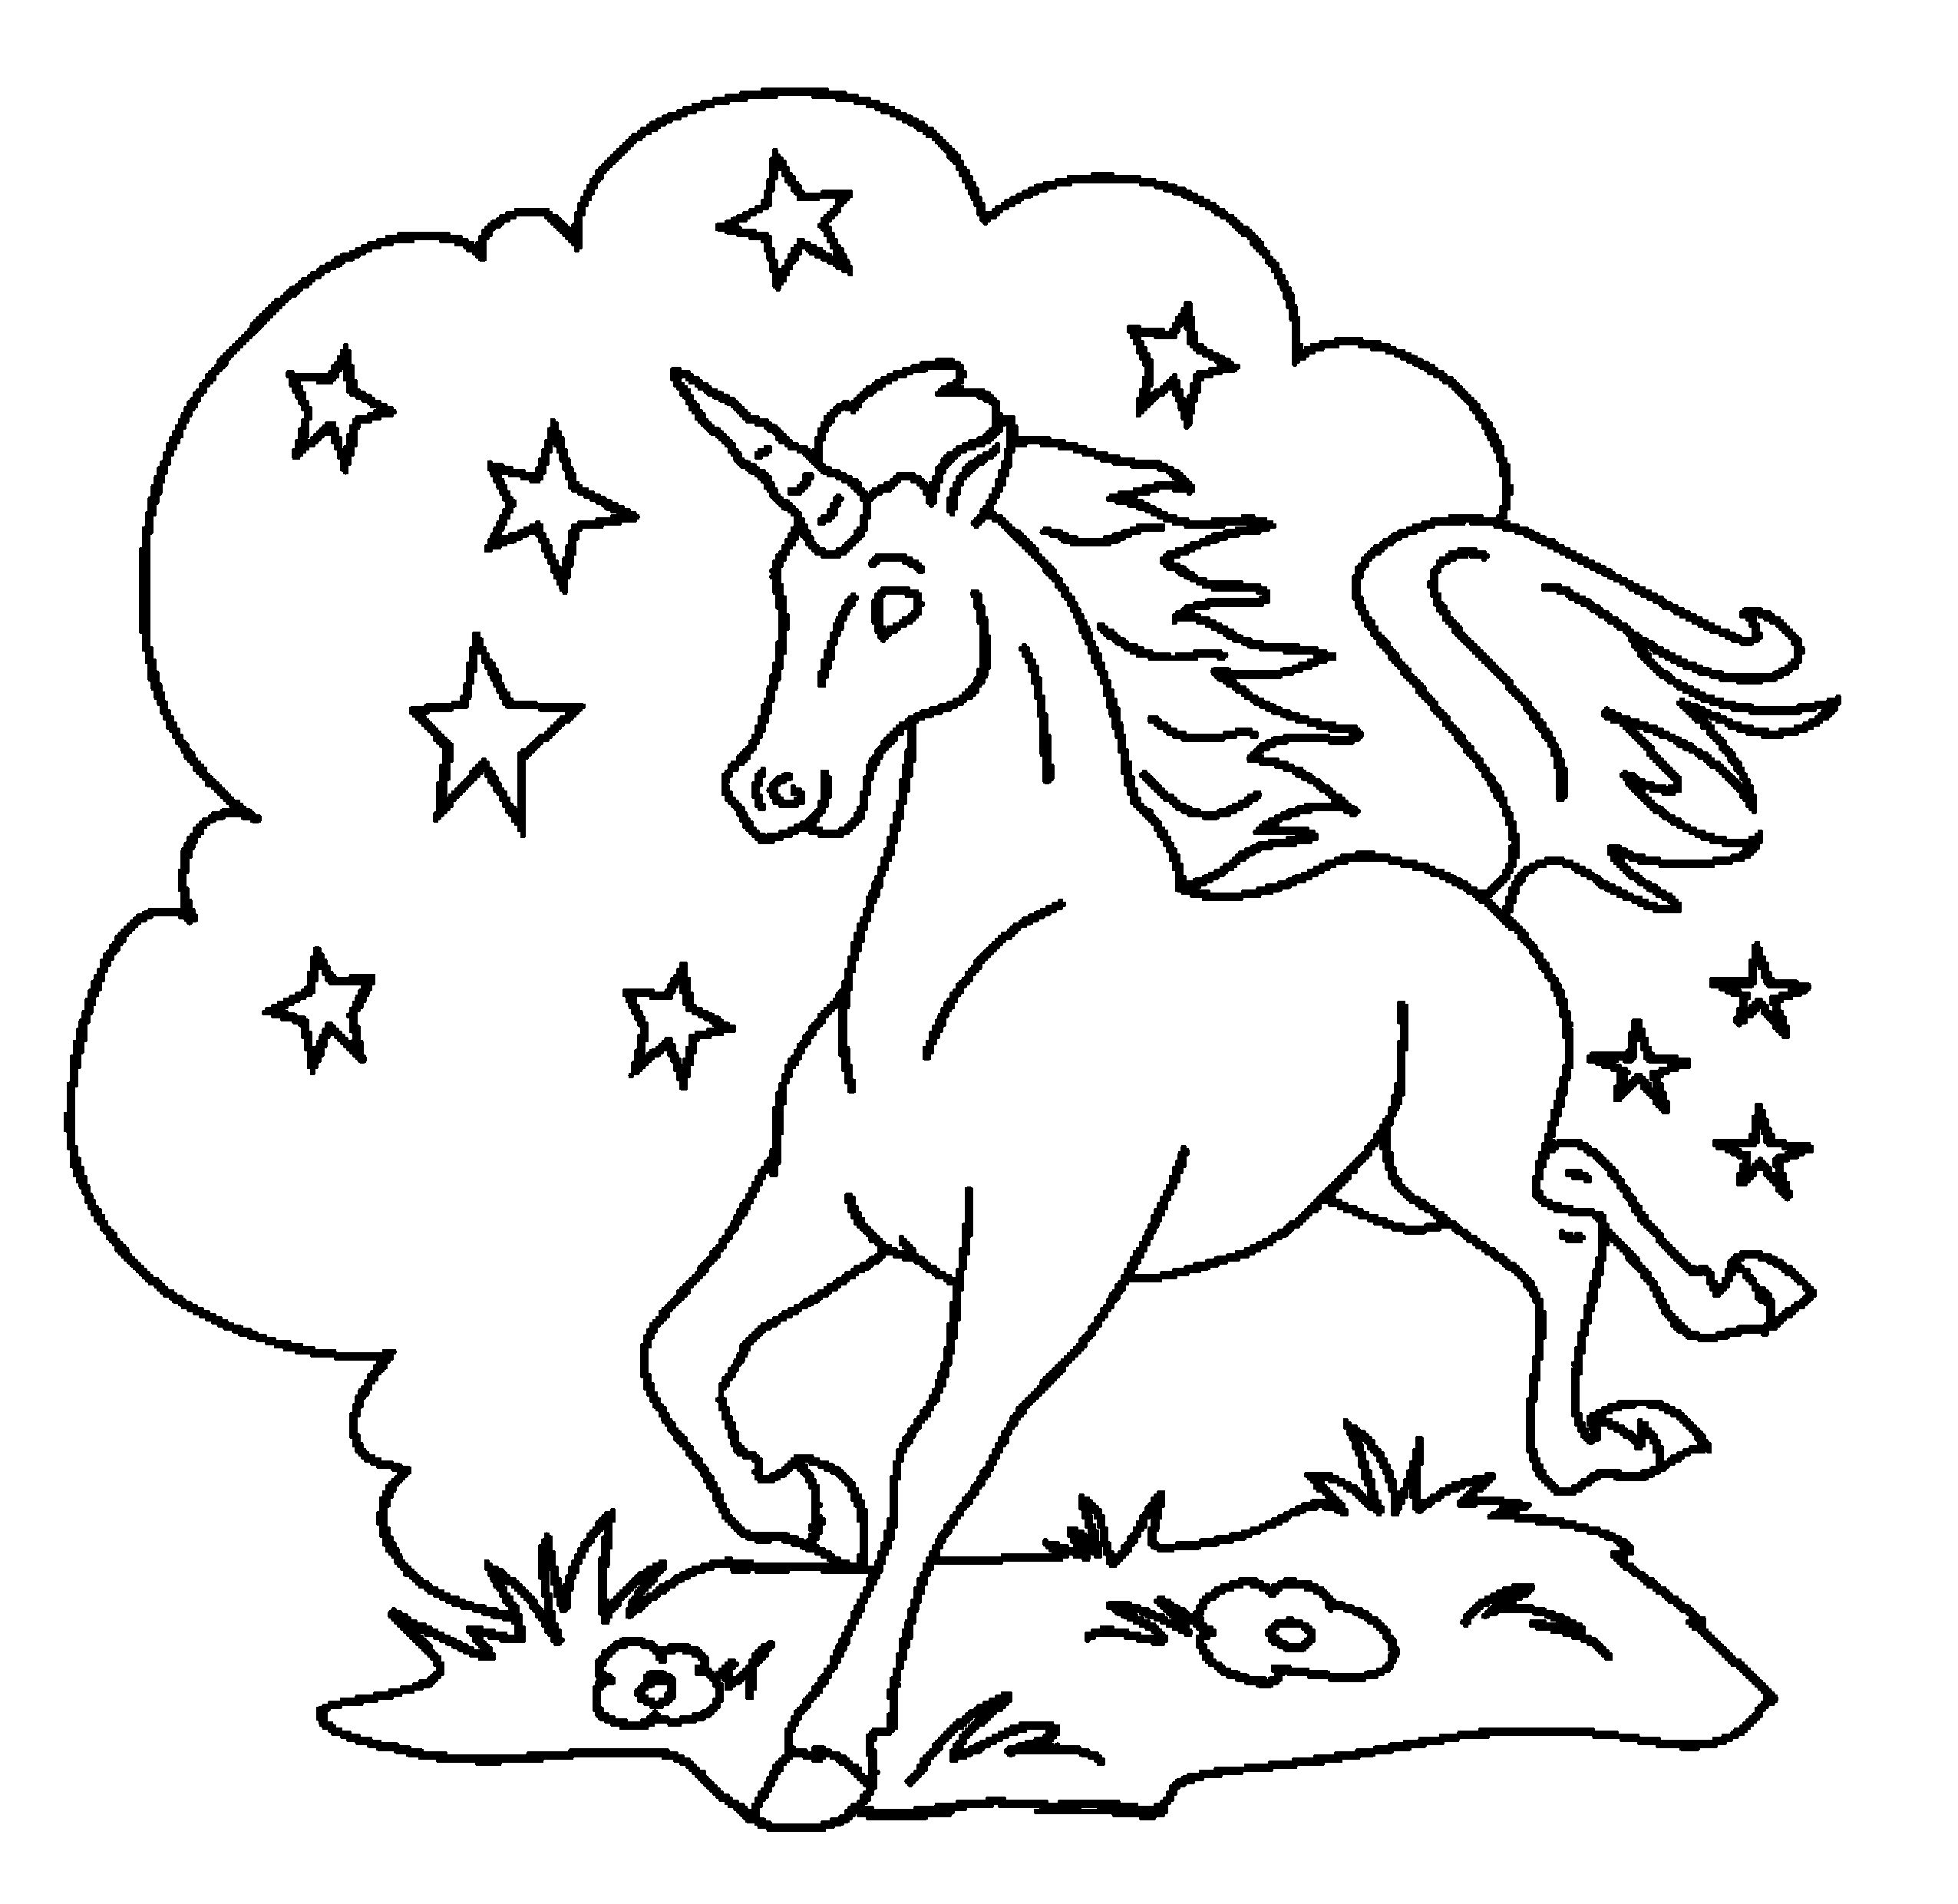 Print Download Unicorn Coloring Pages For Children Printable Free Coloring Books Unicorn Coloring Pages Horse Coloring Pages Puppy Coloring Pages